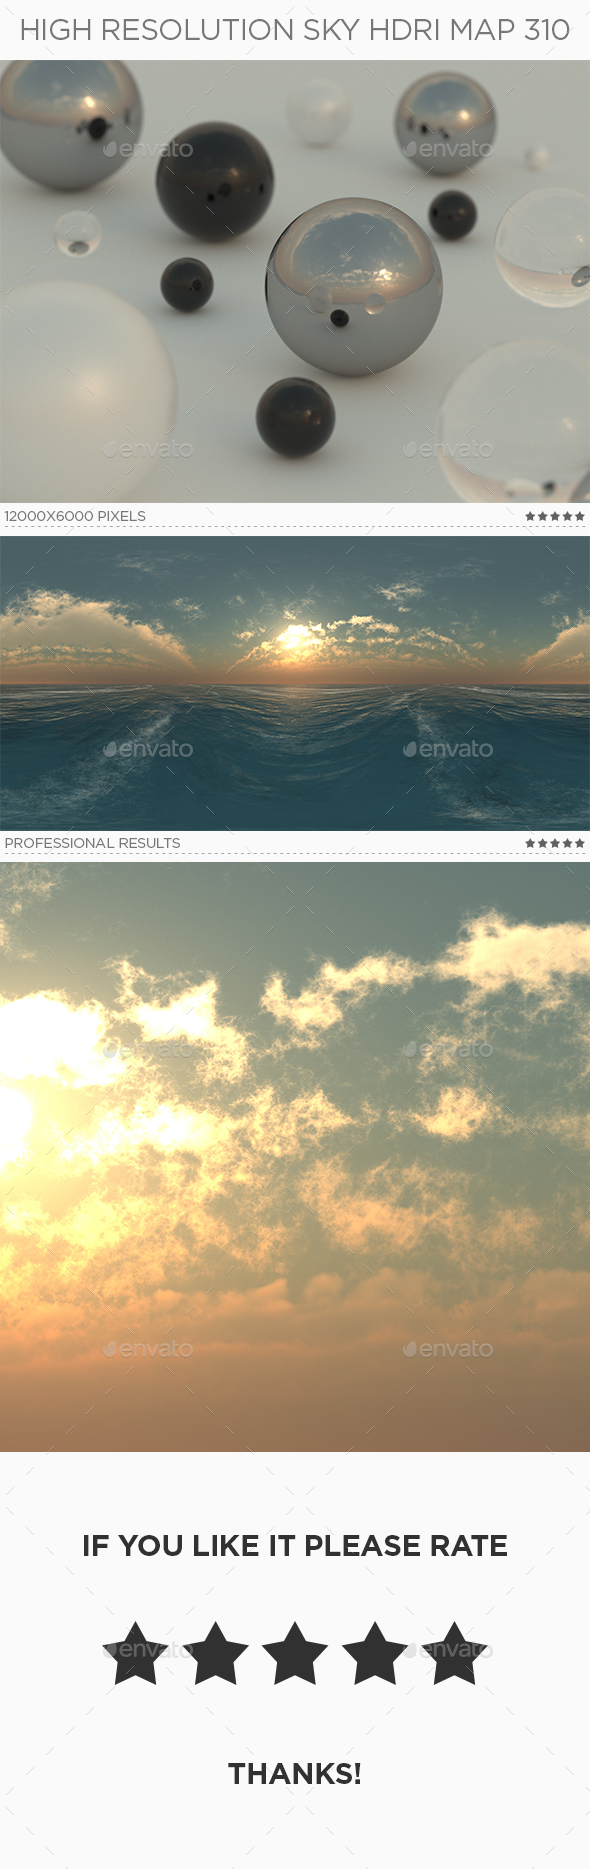 High Resolution Sky HDRi Map 310 by traint   3DOcean High Resolution Sky HDRi Map 310   3DOcean Item for Sale